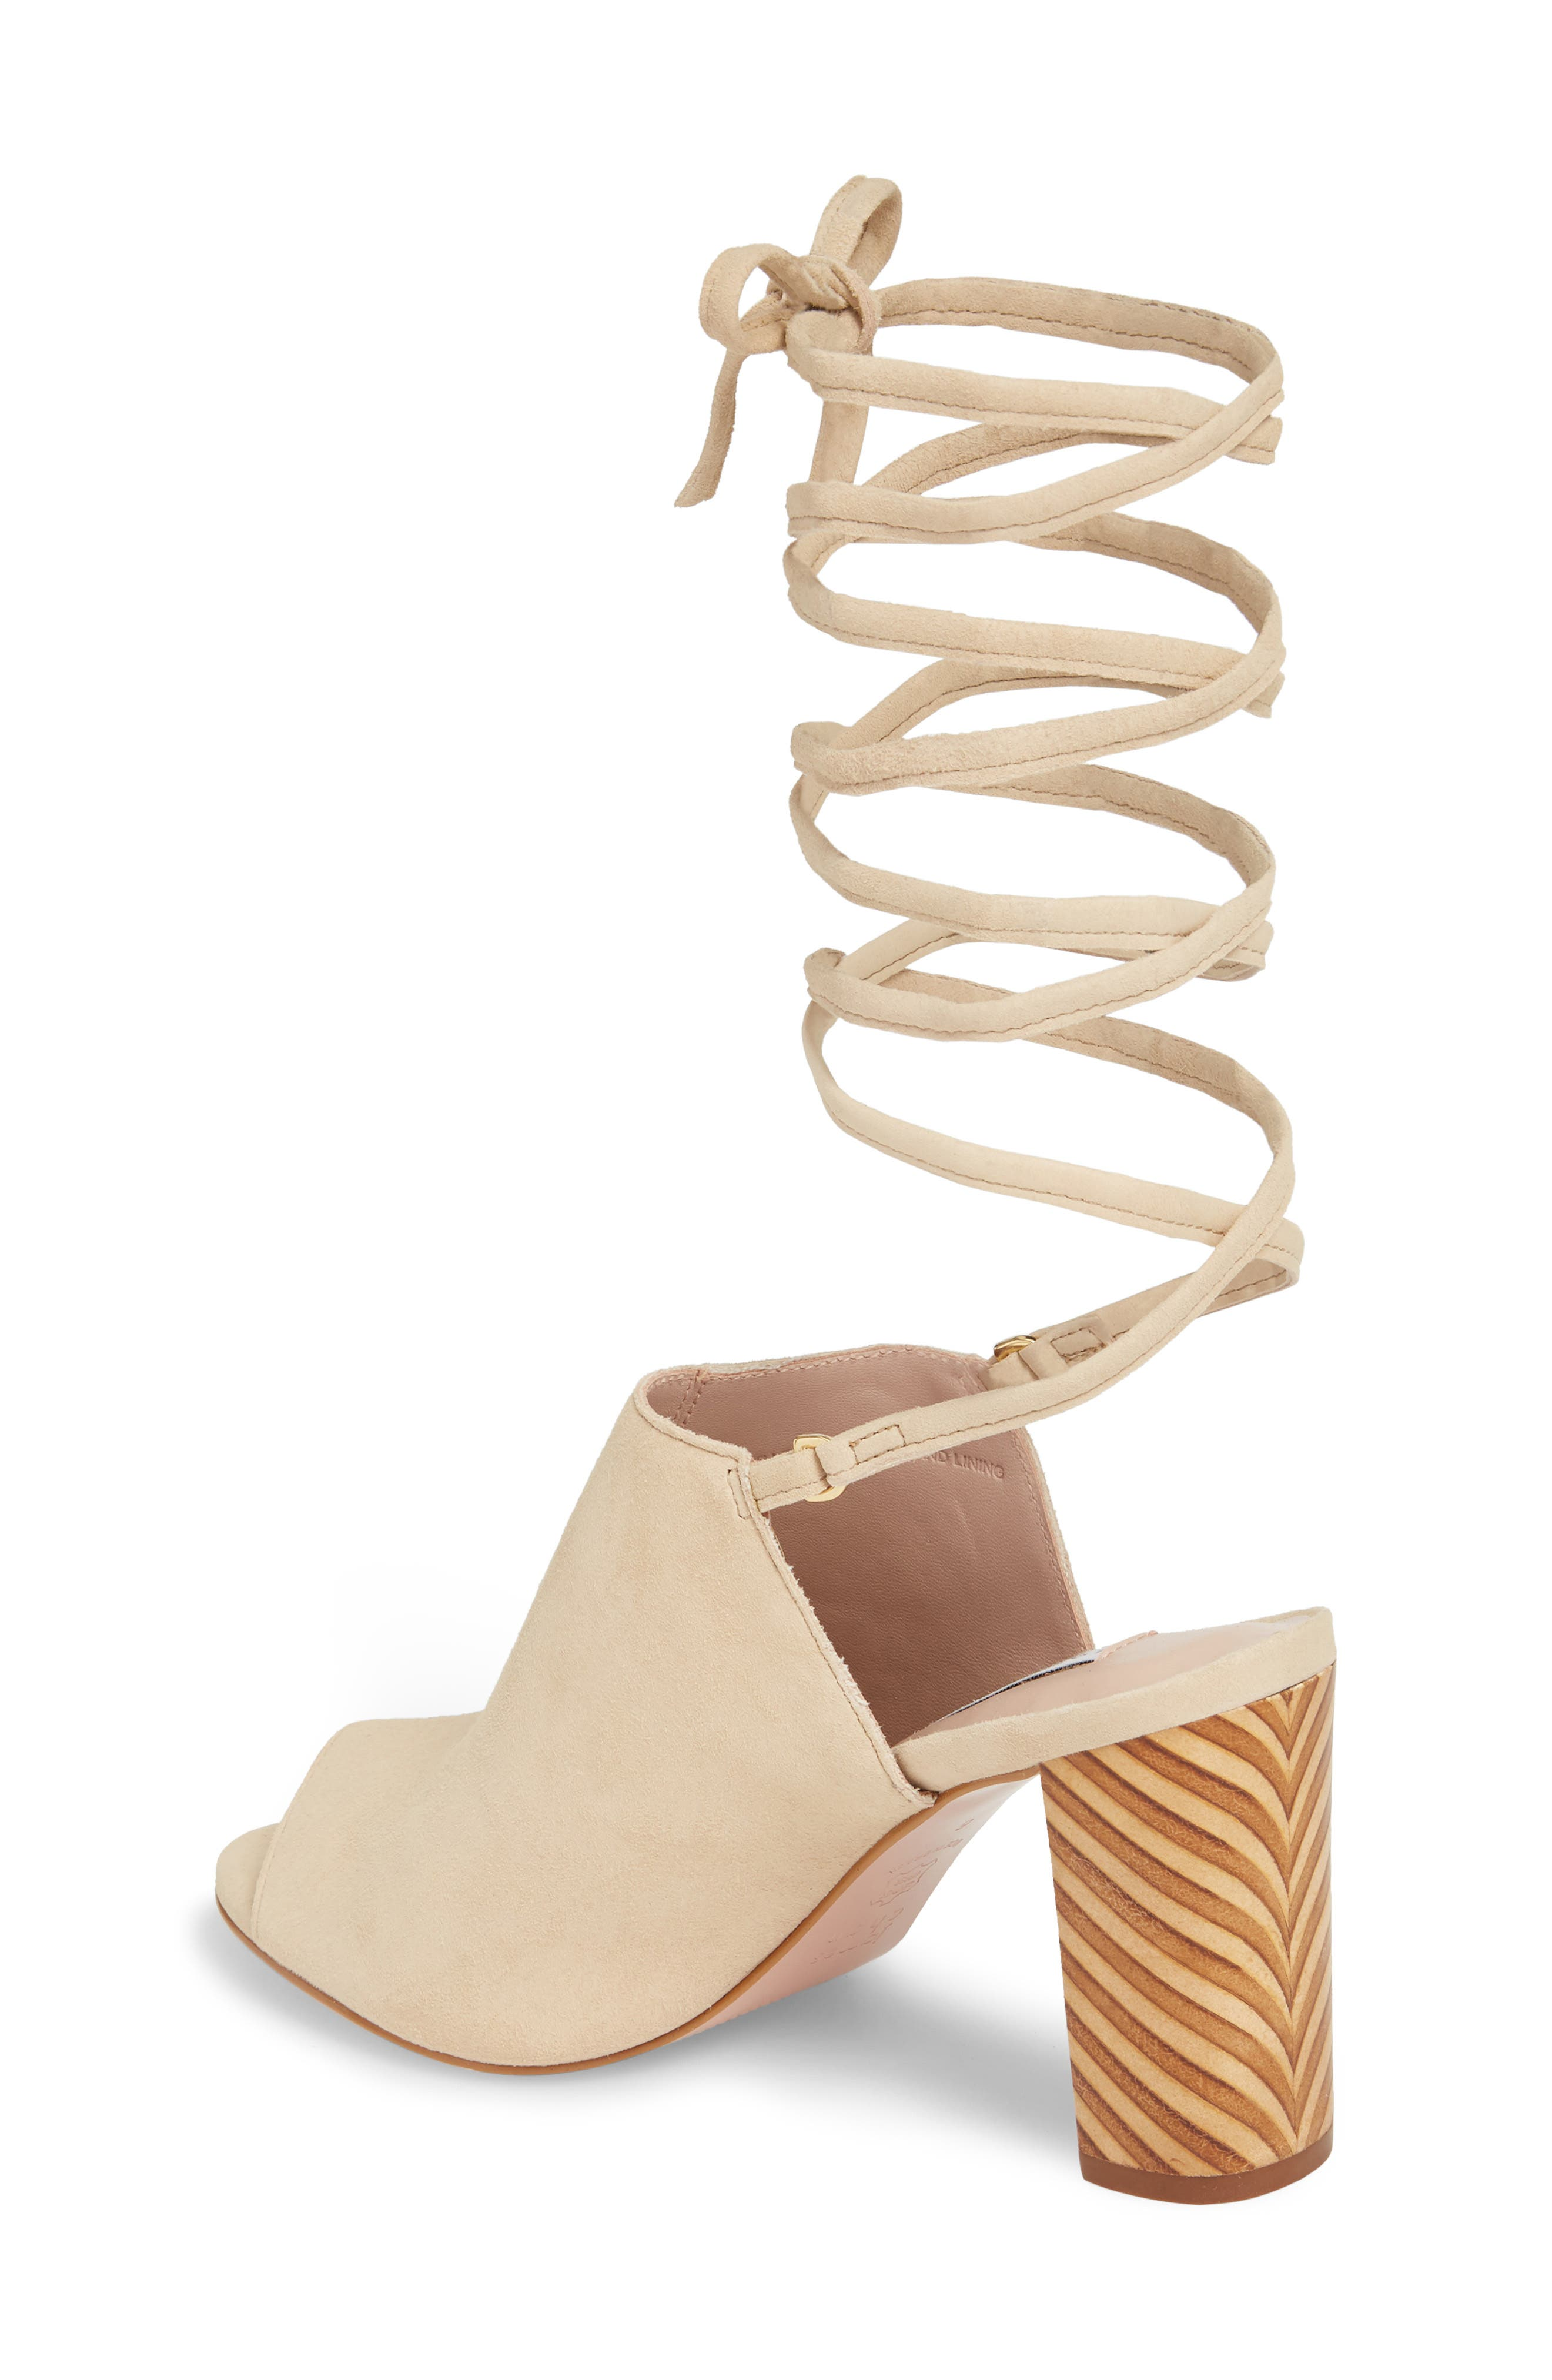 Allegra Ankle Wrap Sandal,                             Alternate thumbnail 2, color,                             Sand Suede